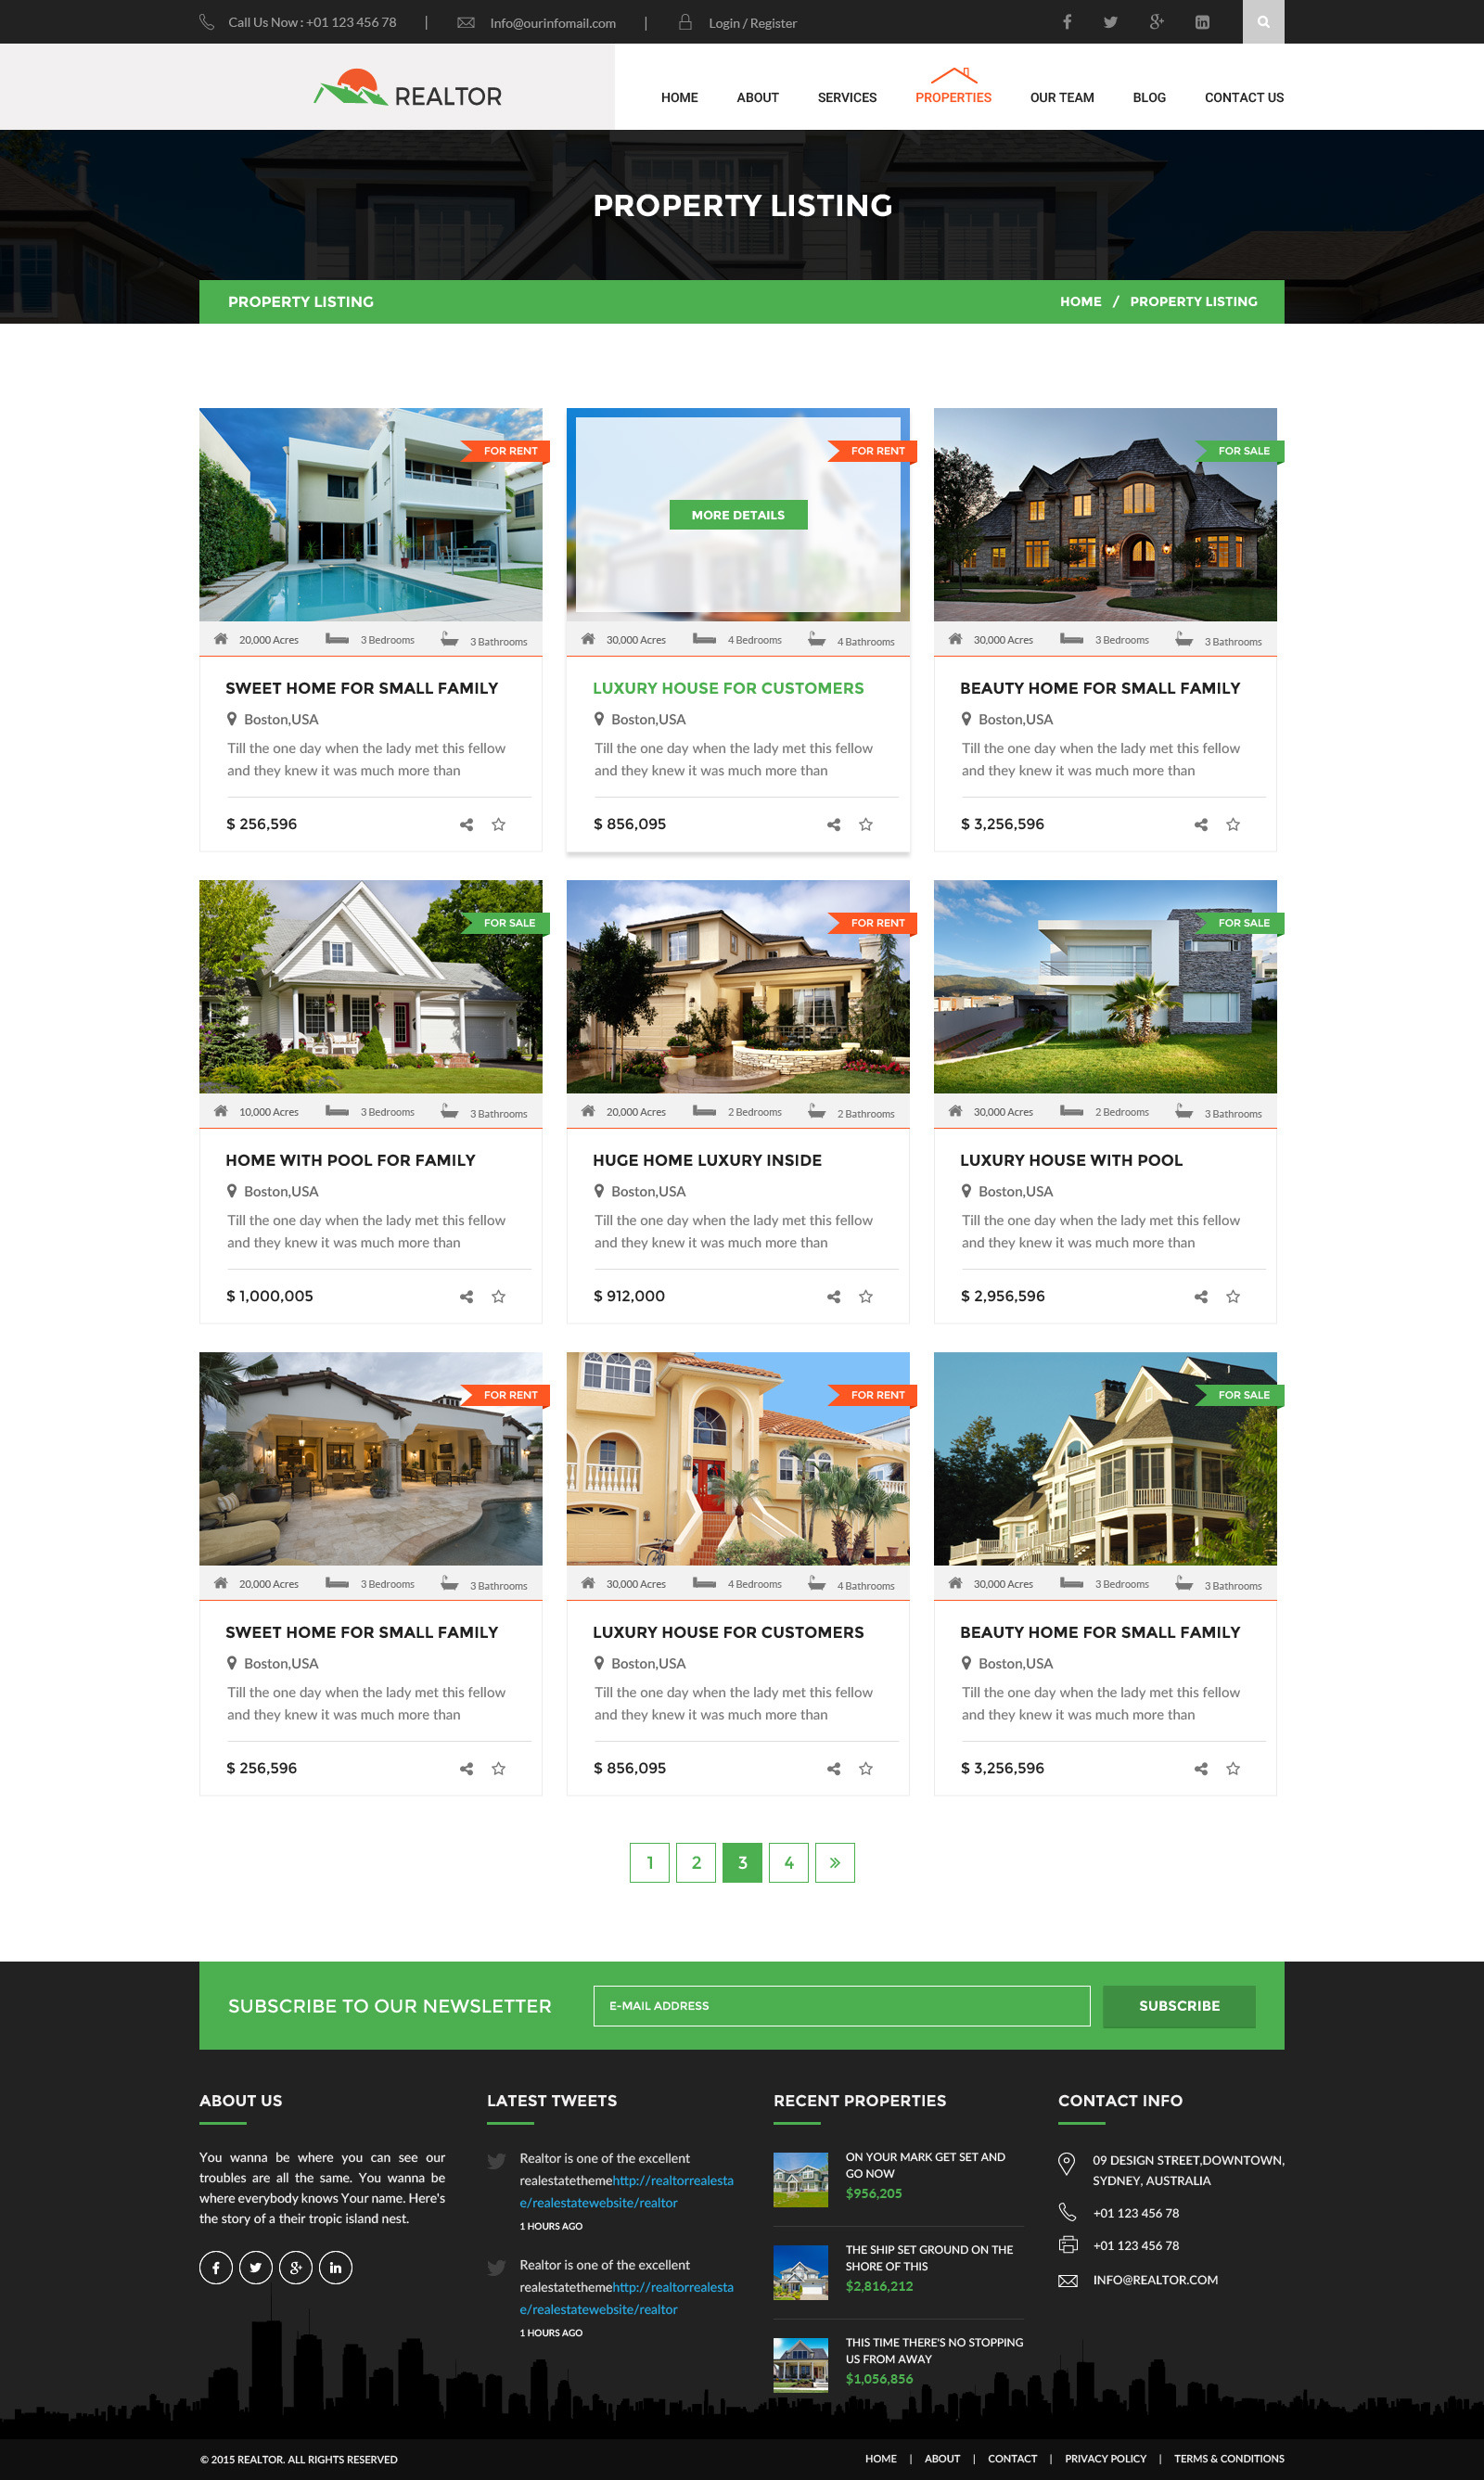 realtor real estate html template by wpmines themeforest screenshots 07 property listing jpg